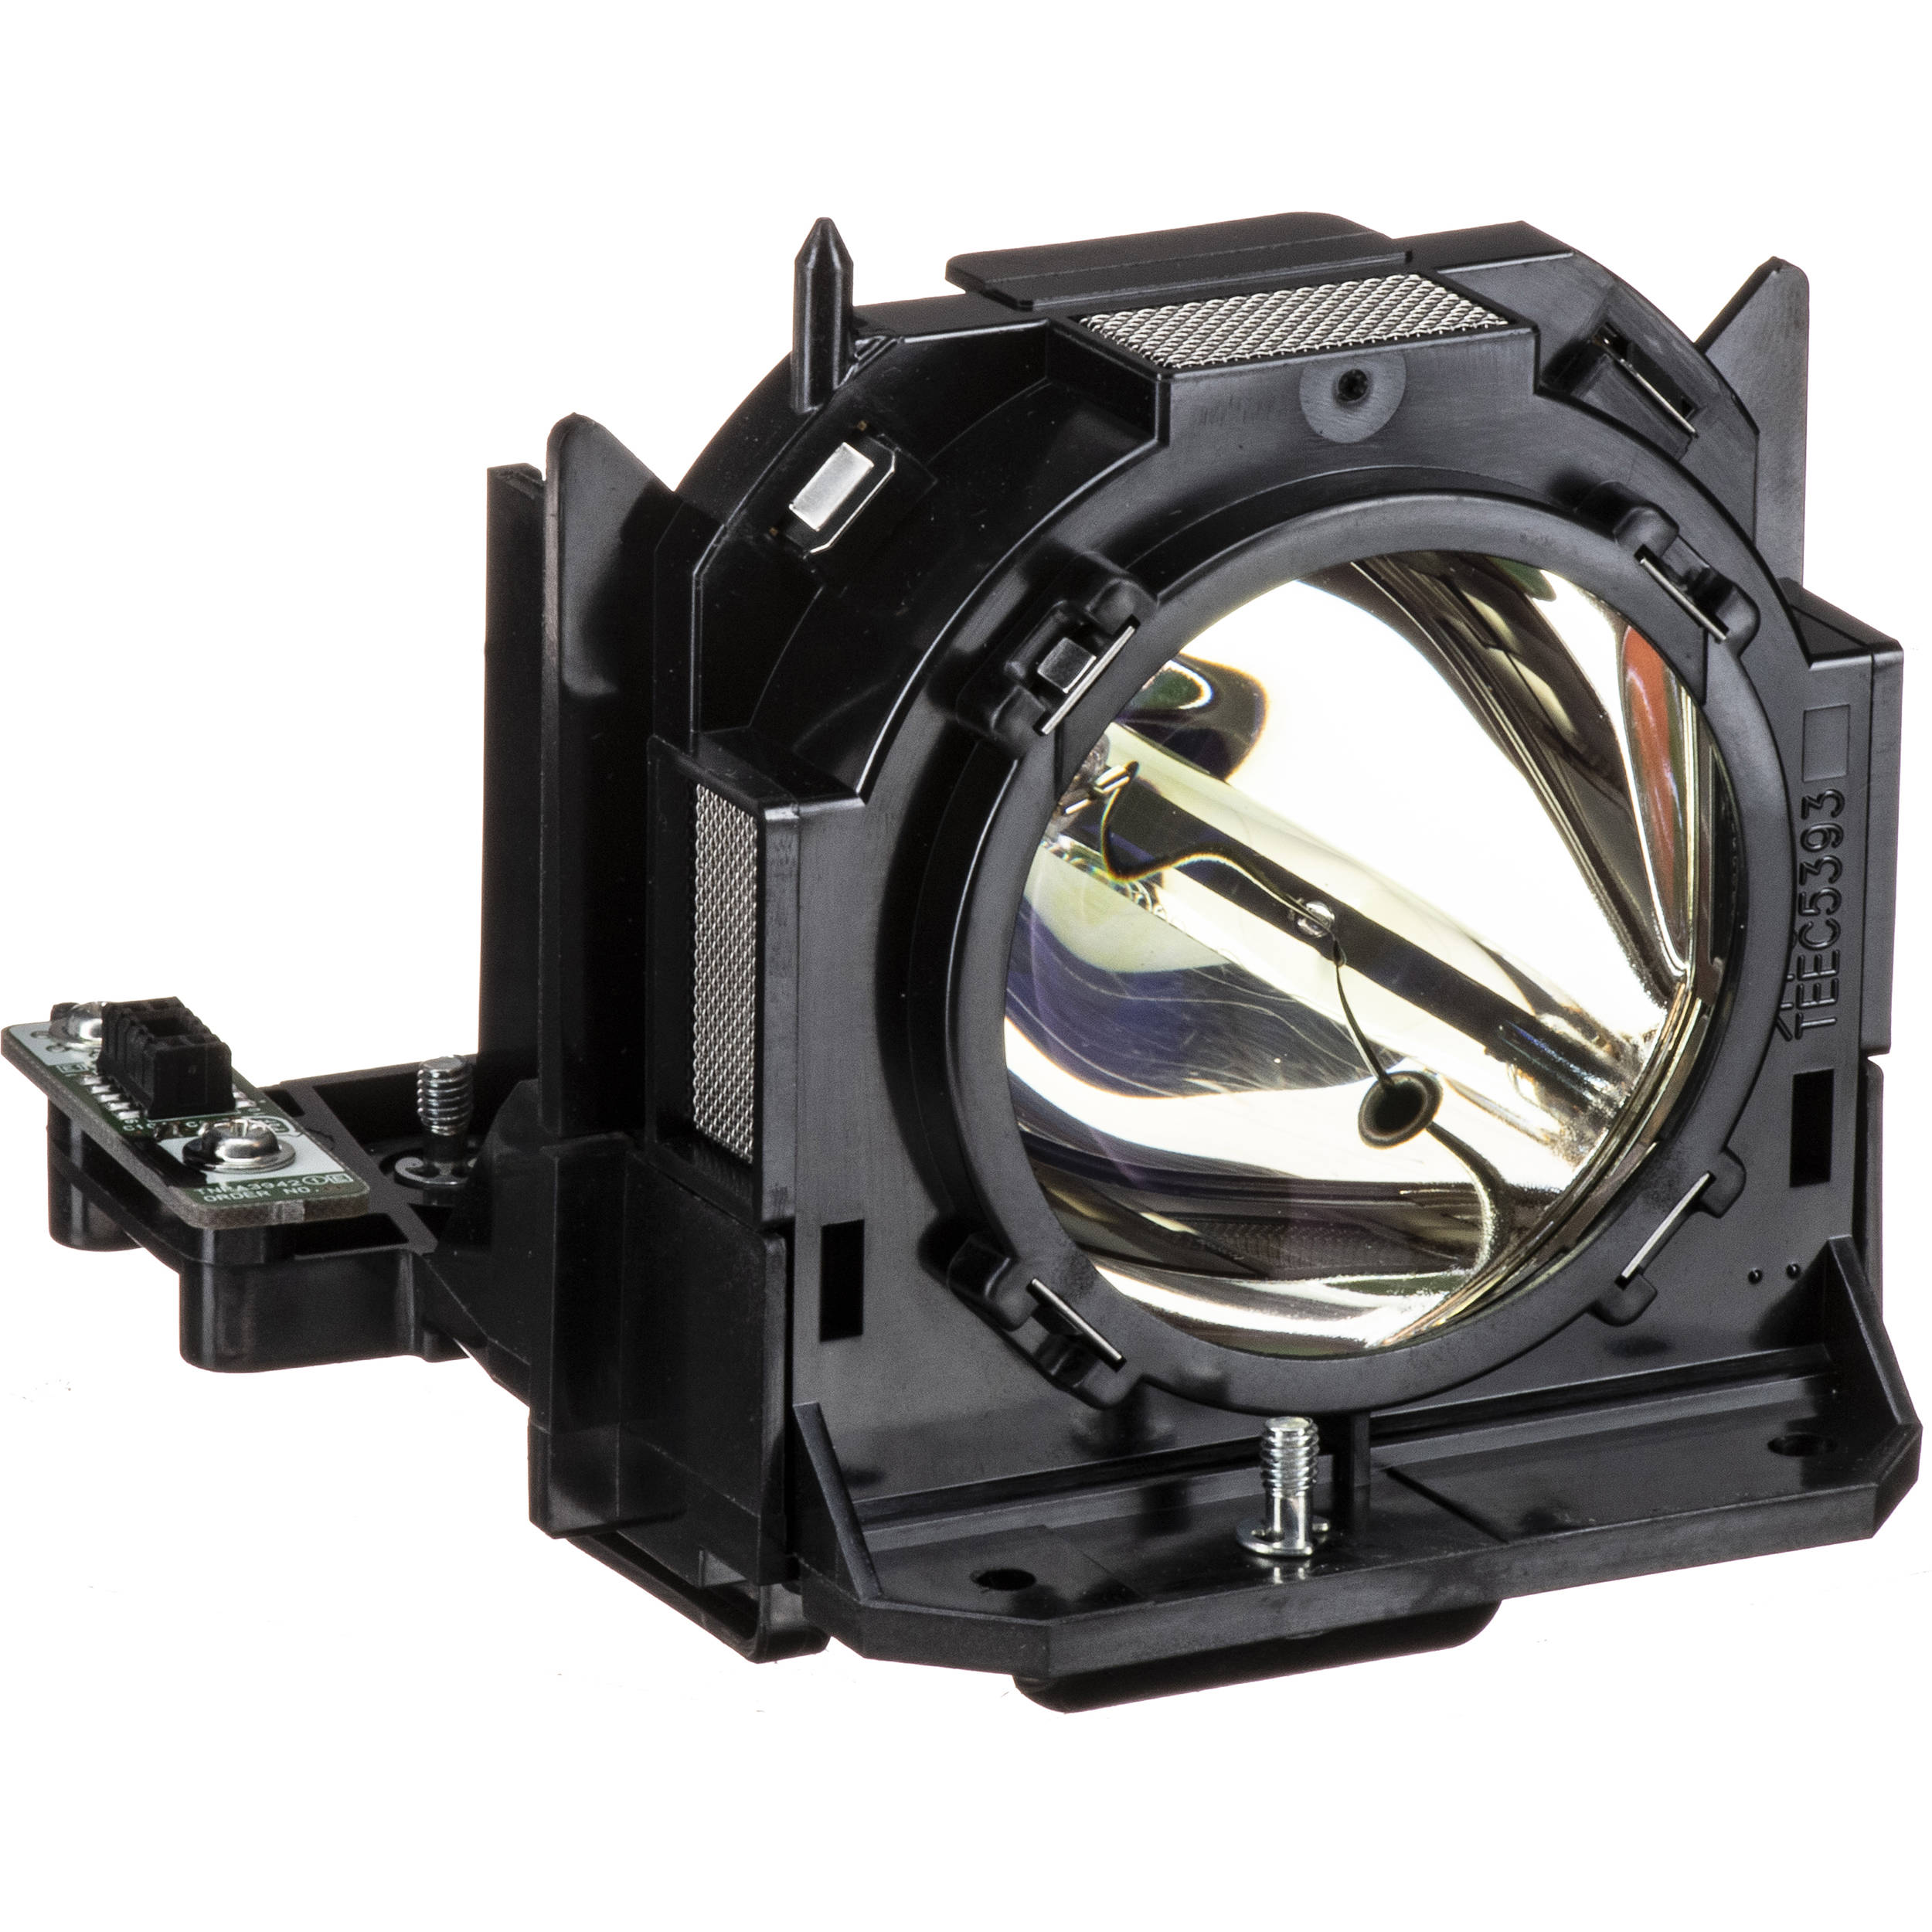 Replacement for Panasonic Etlad57w Lamp /& Housing Projector Tv Lamp Bulb by Technical Precision